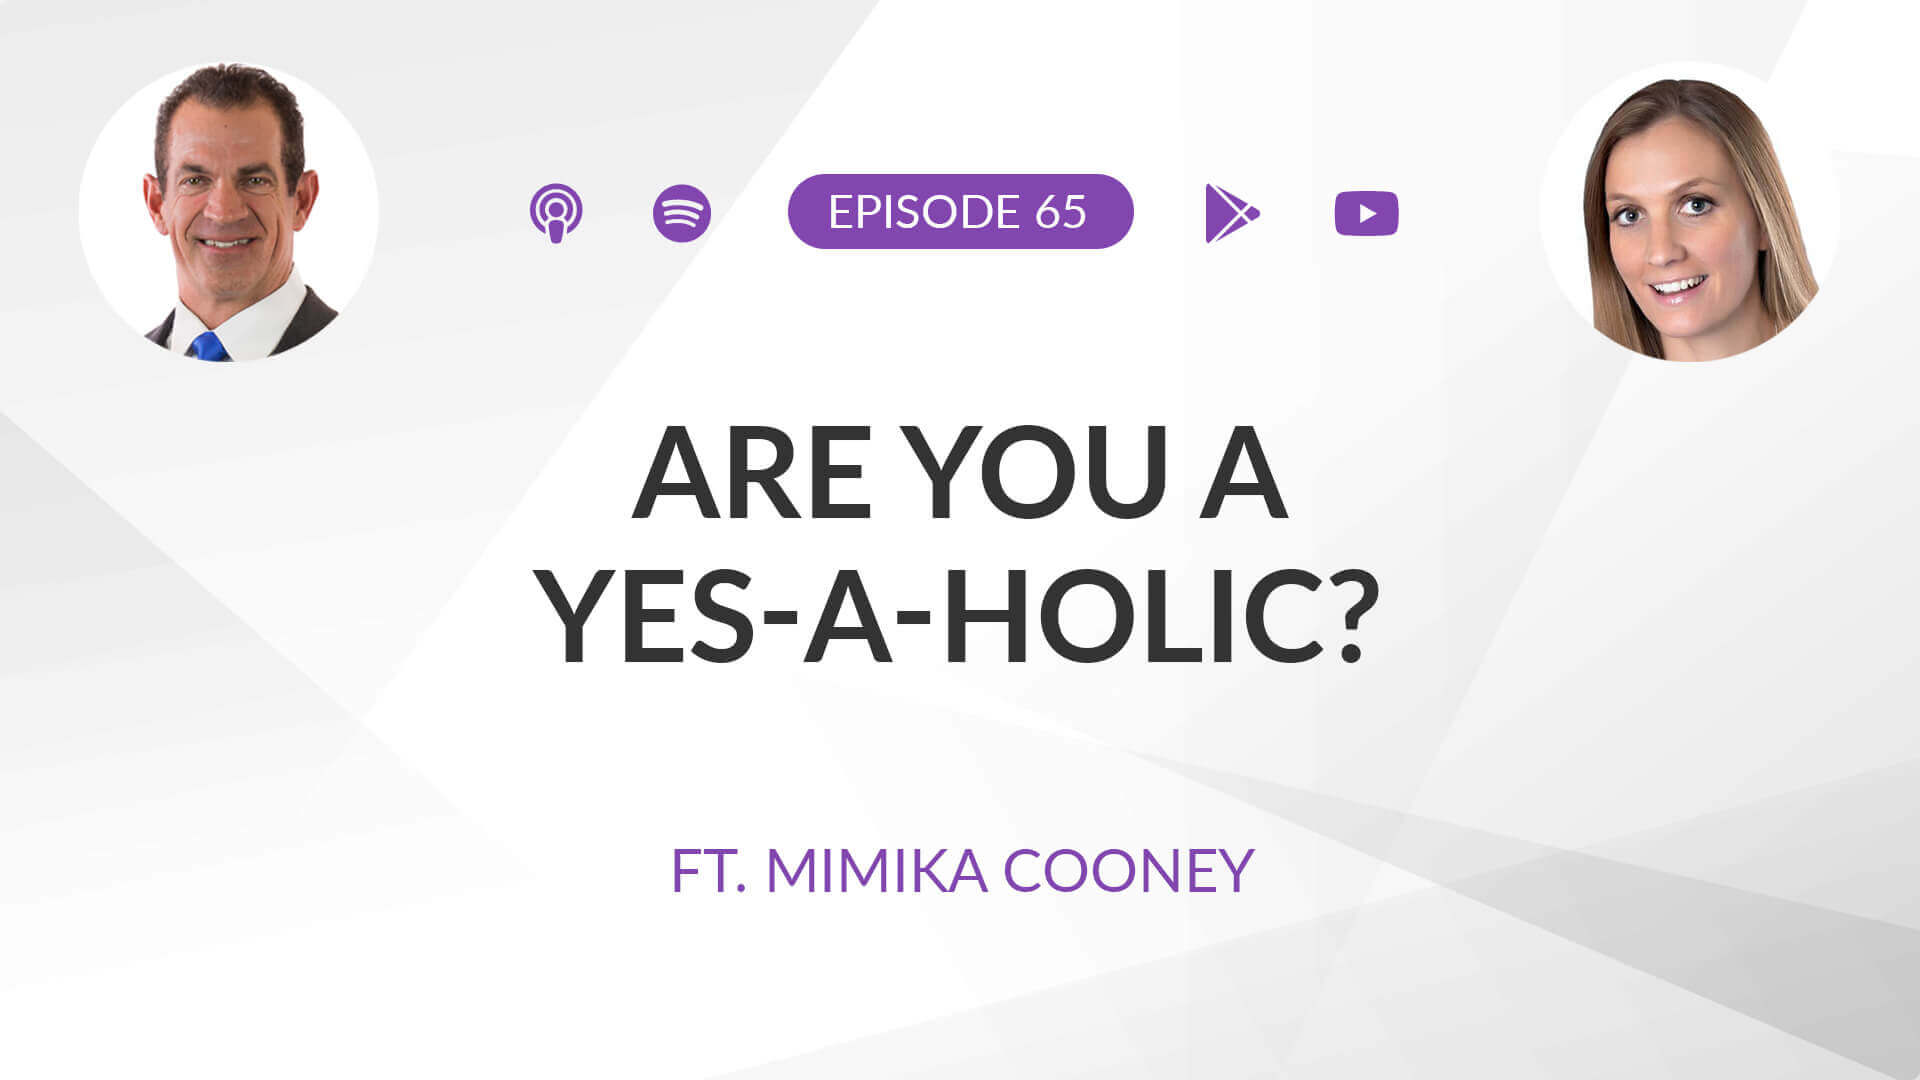 Ep 65: Are you a YES-a-holic? ft. Mimika Cooney